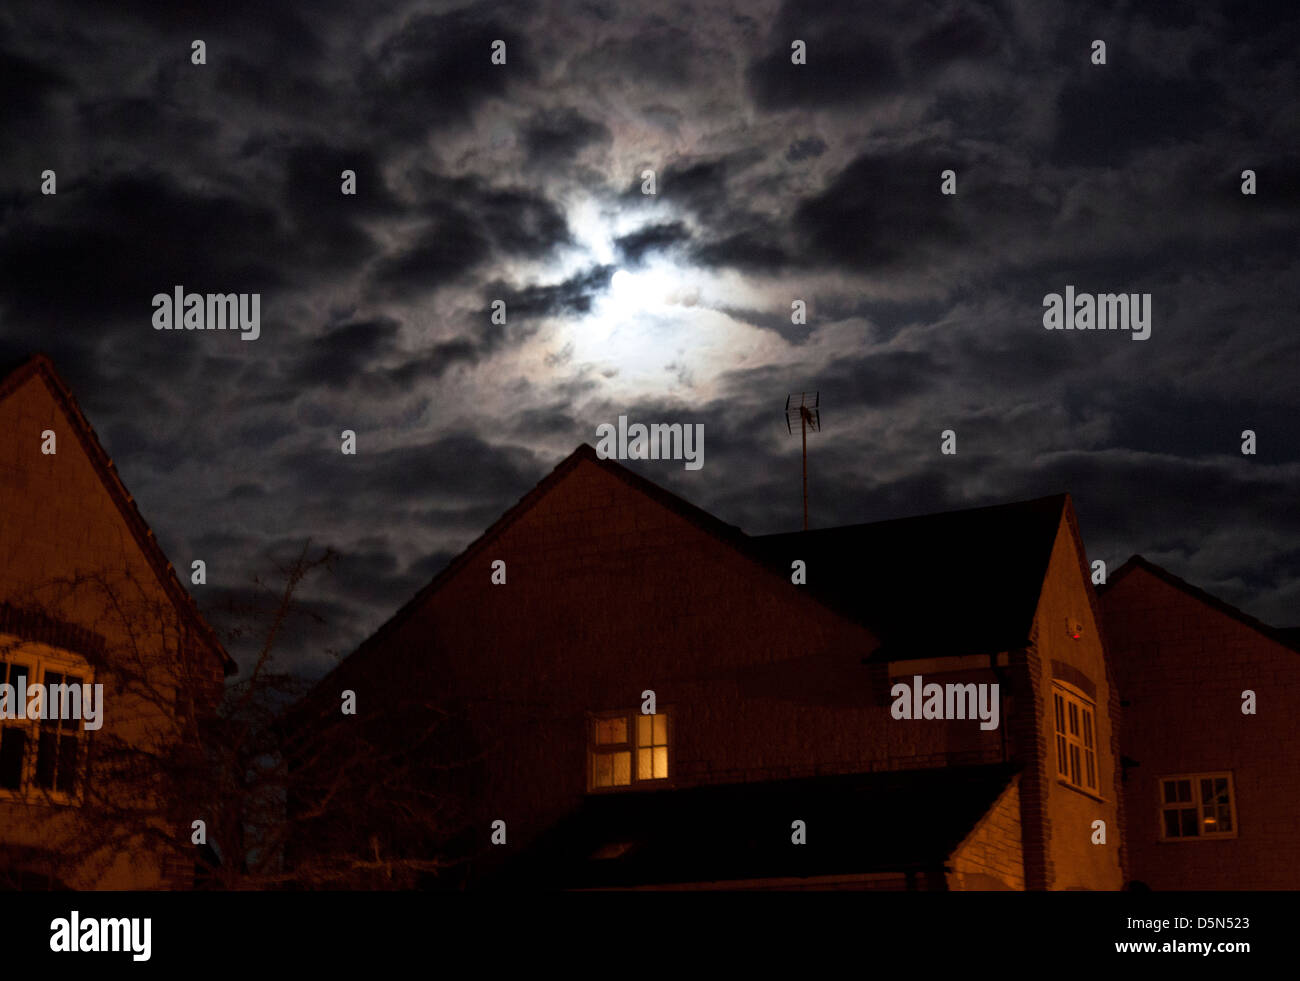 Spooky moon over English house - Stock Image